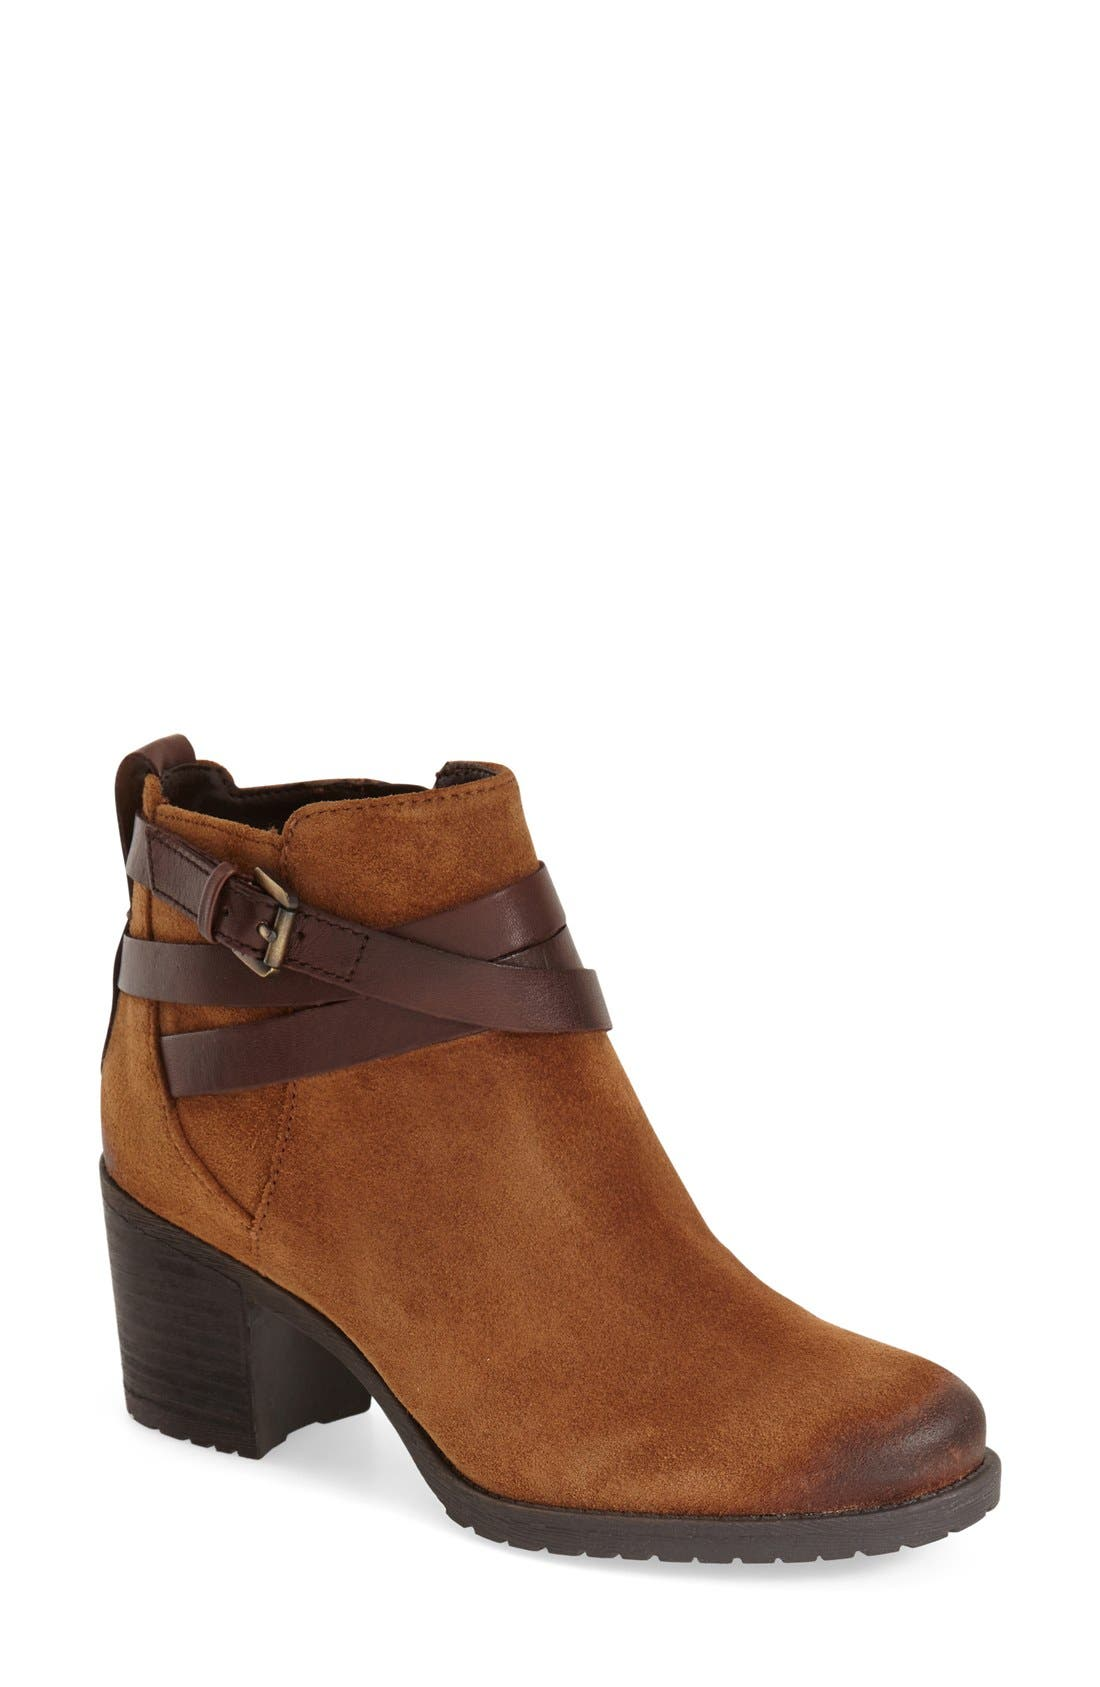 'Hannah' Belted Chelsea Bootie,                             Main thumbnail 1, color,                             Mocha Latte/ Sienna